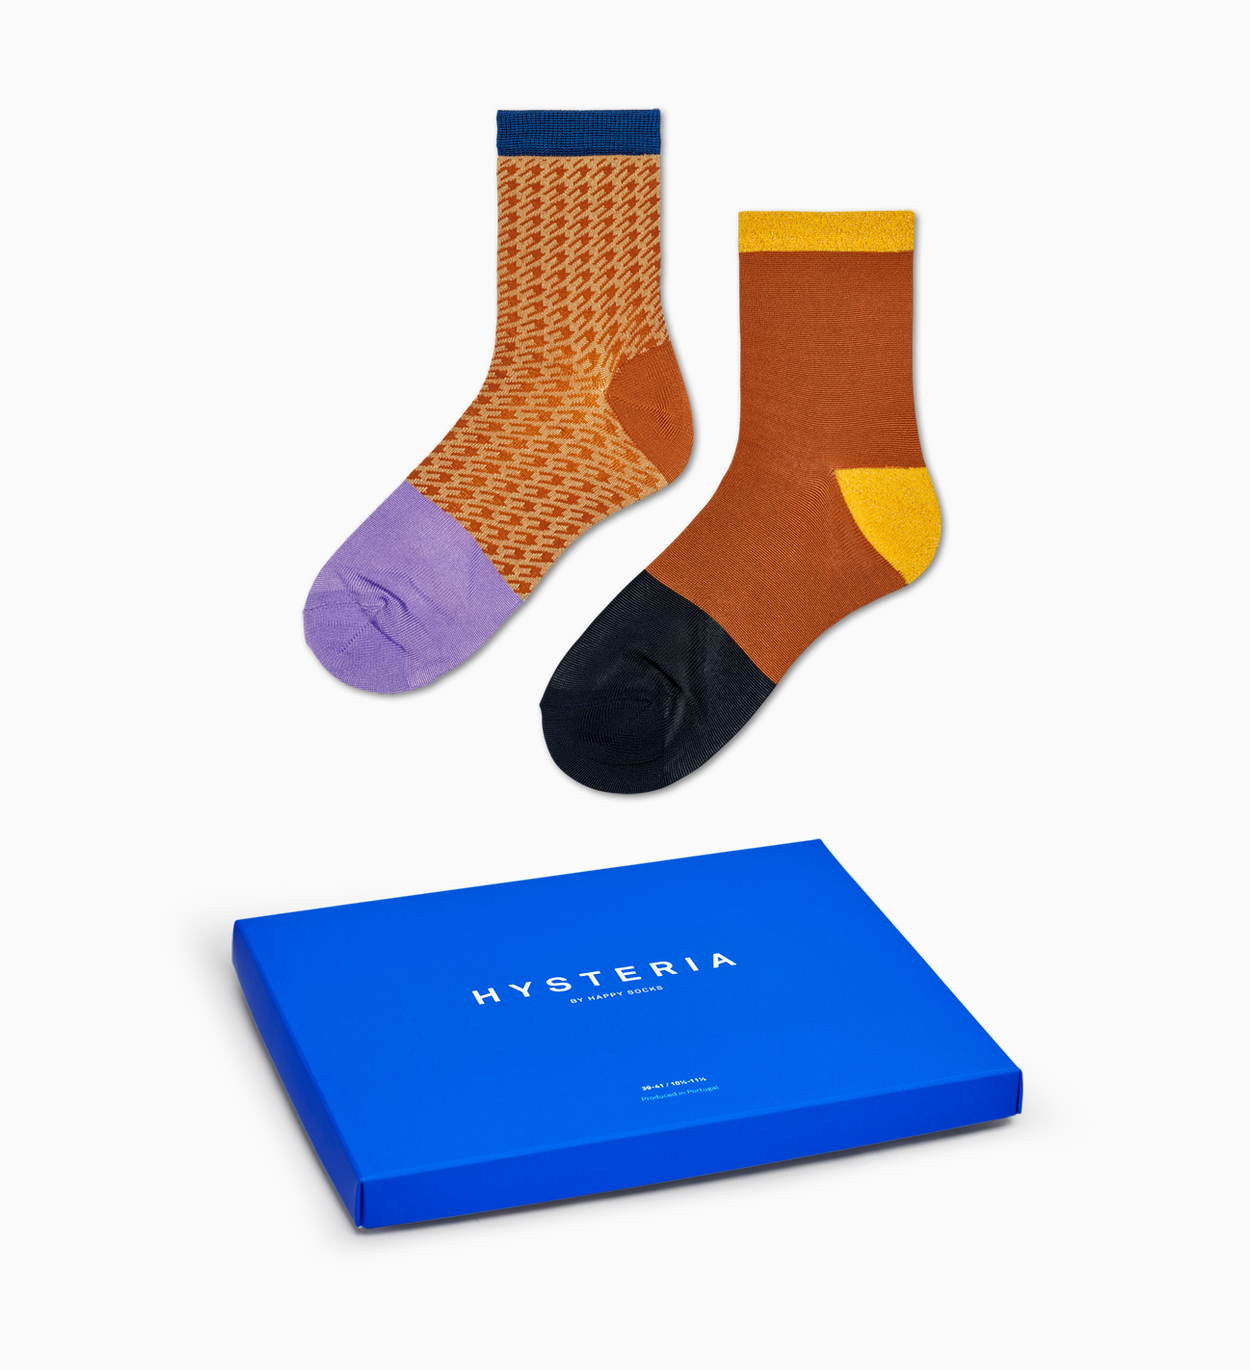 Hanna Holiday Gift Box | Hysteria by Happy Socks